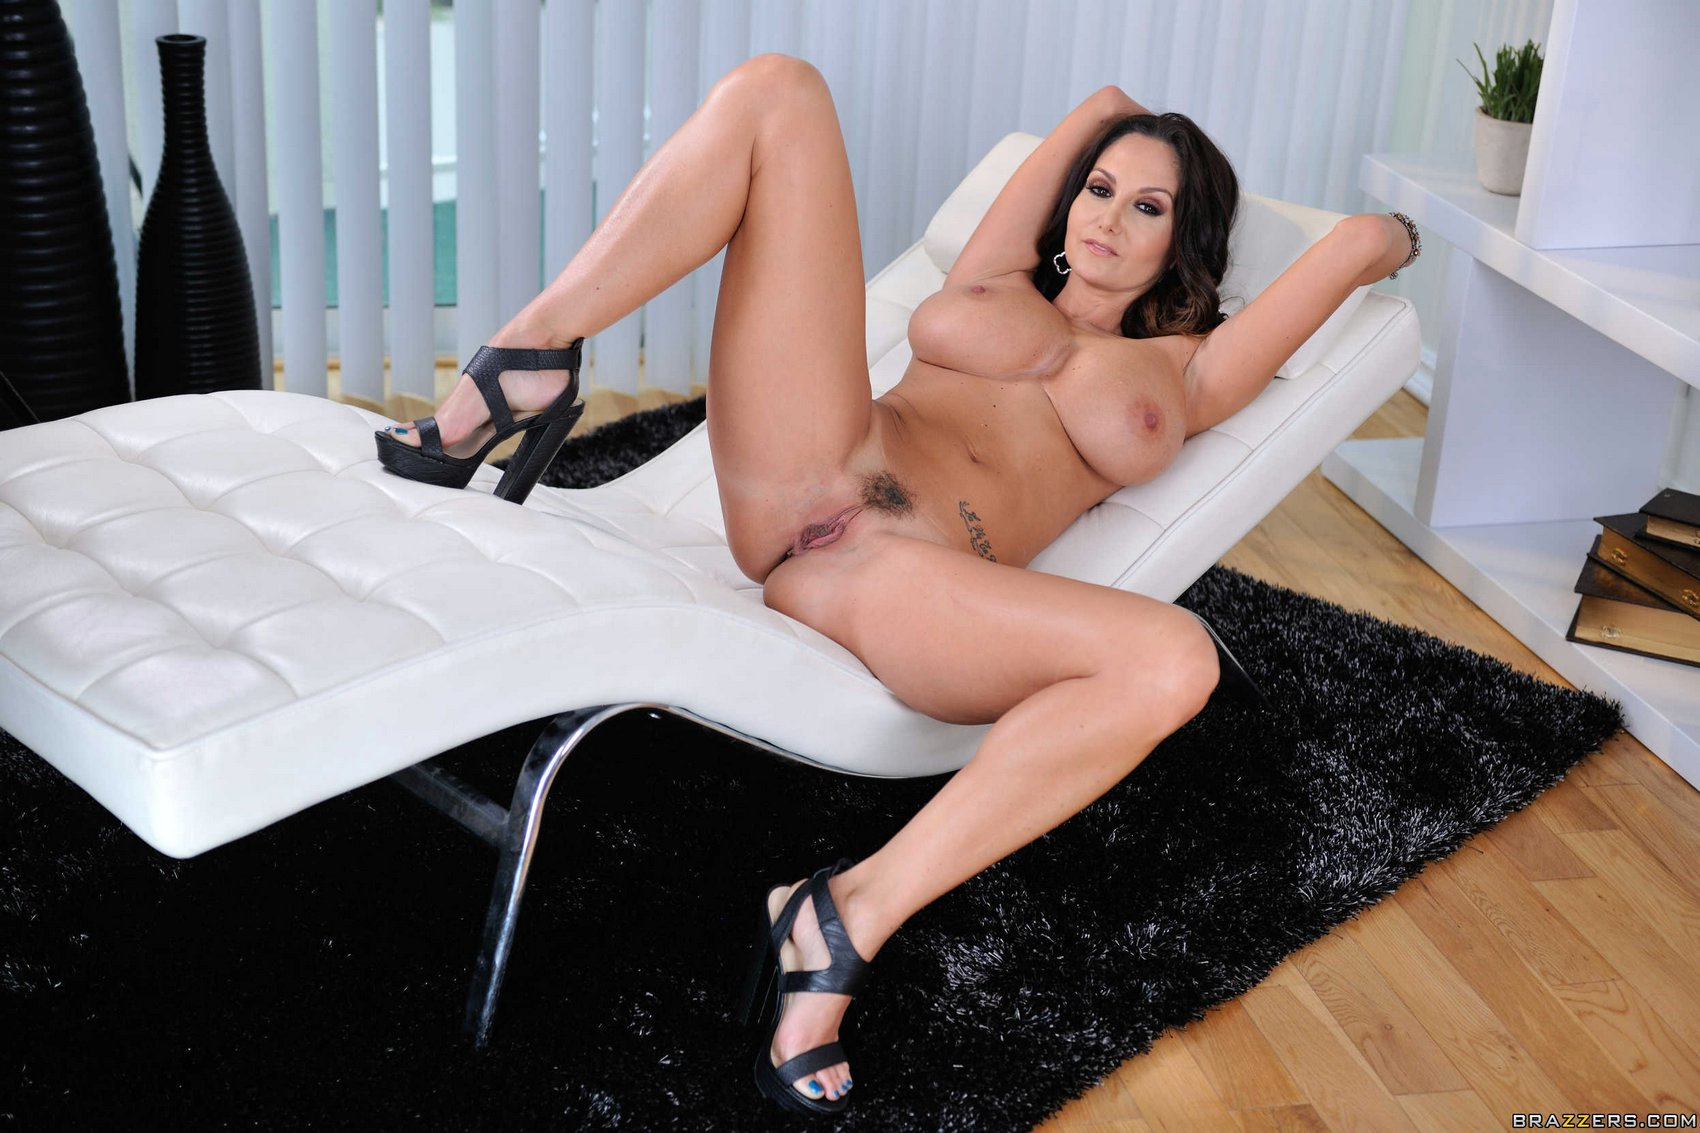 Ava addams stunning body on desk 2